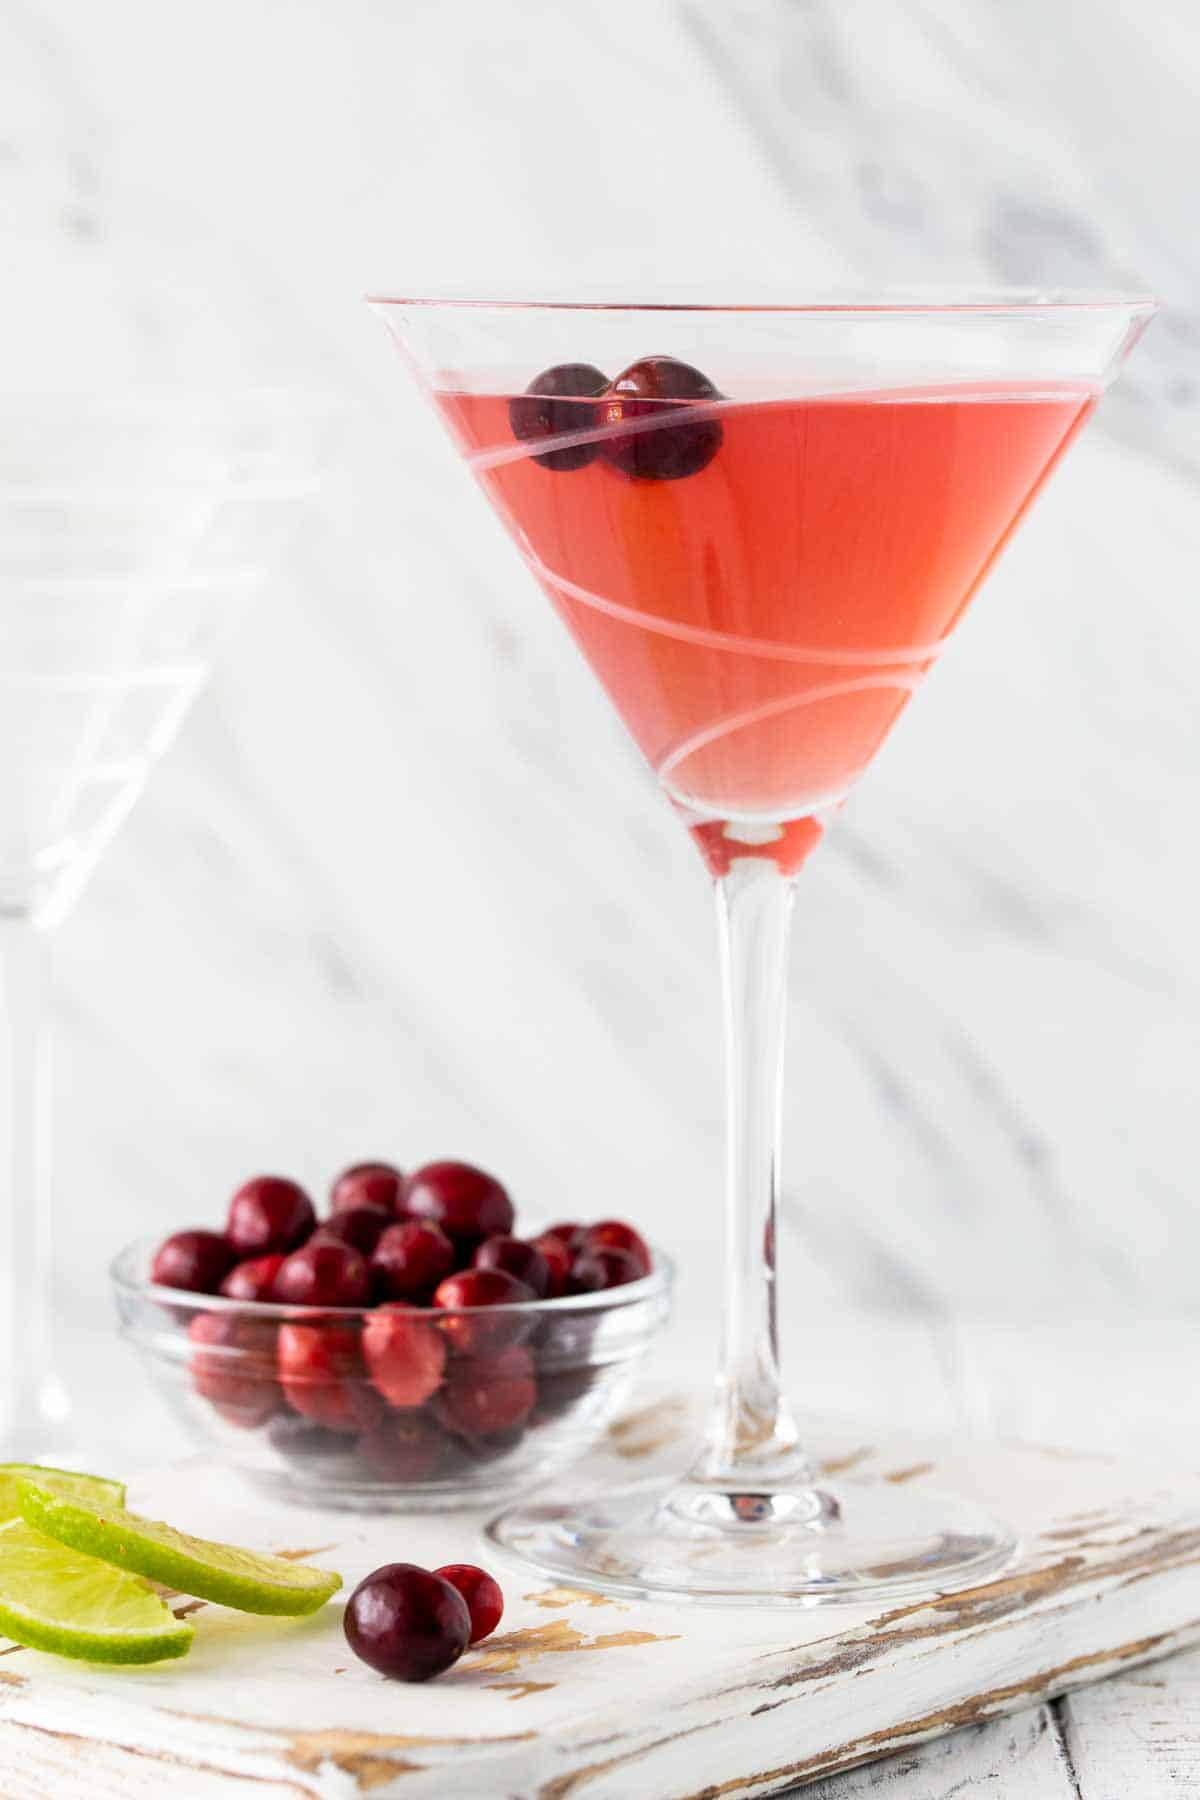 Pink martini with cranberries on a white board.